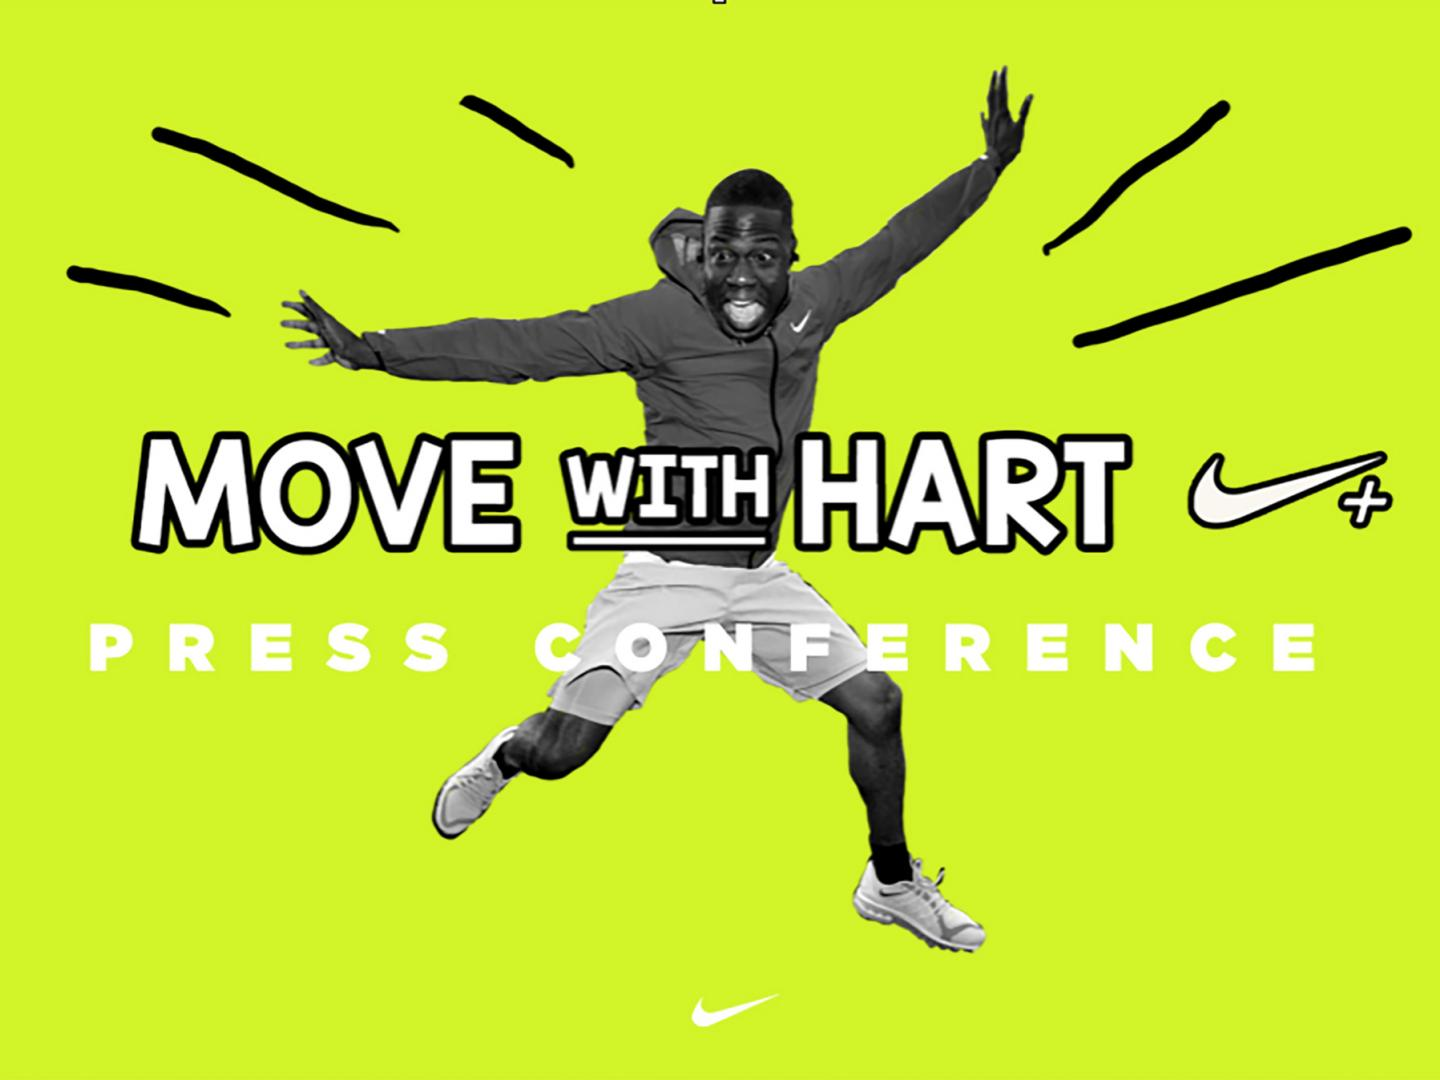 Kevin Hart Press Conference Thumbnail